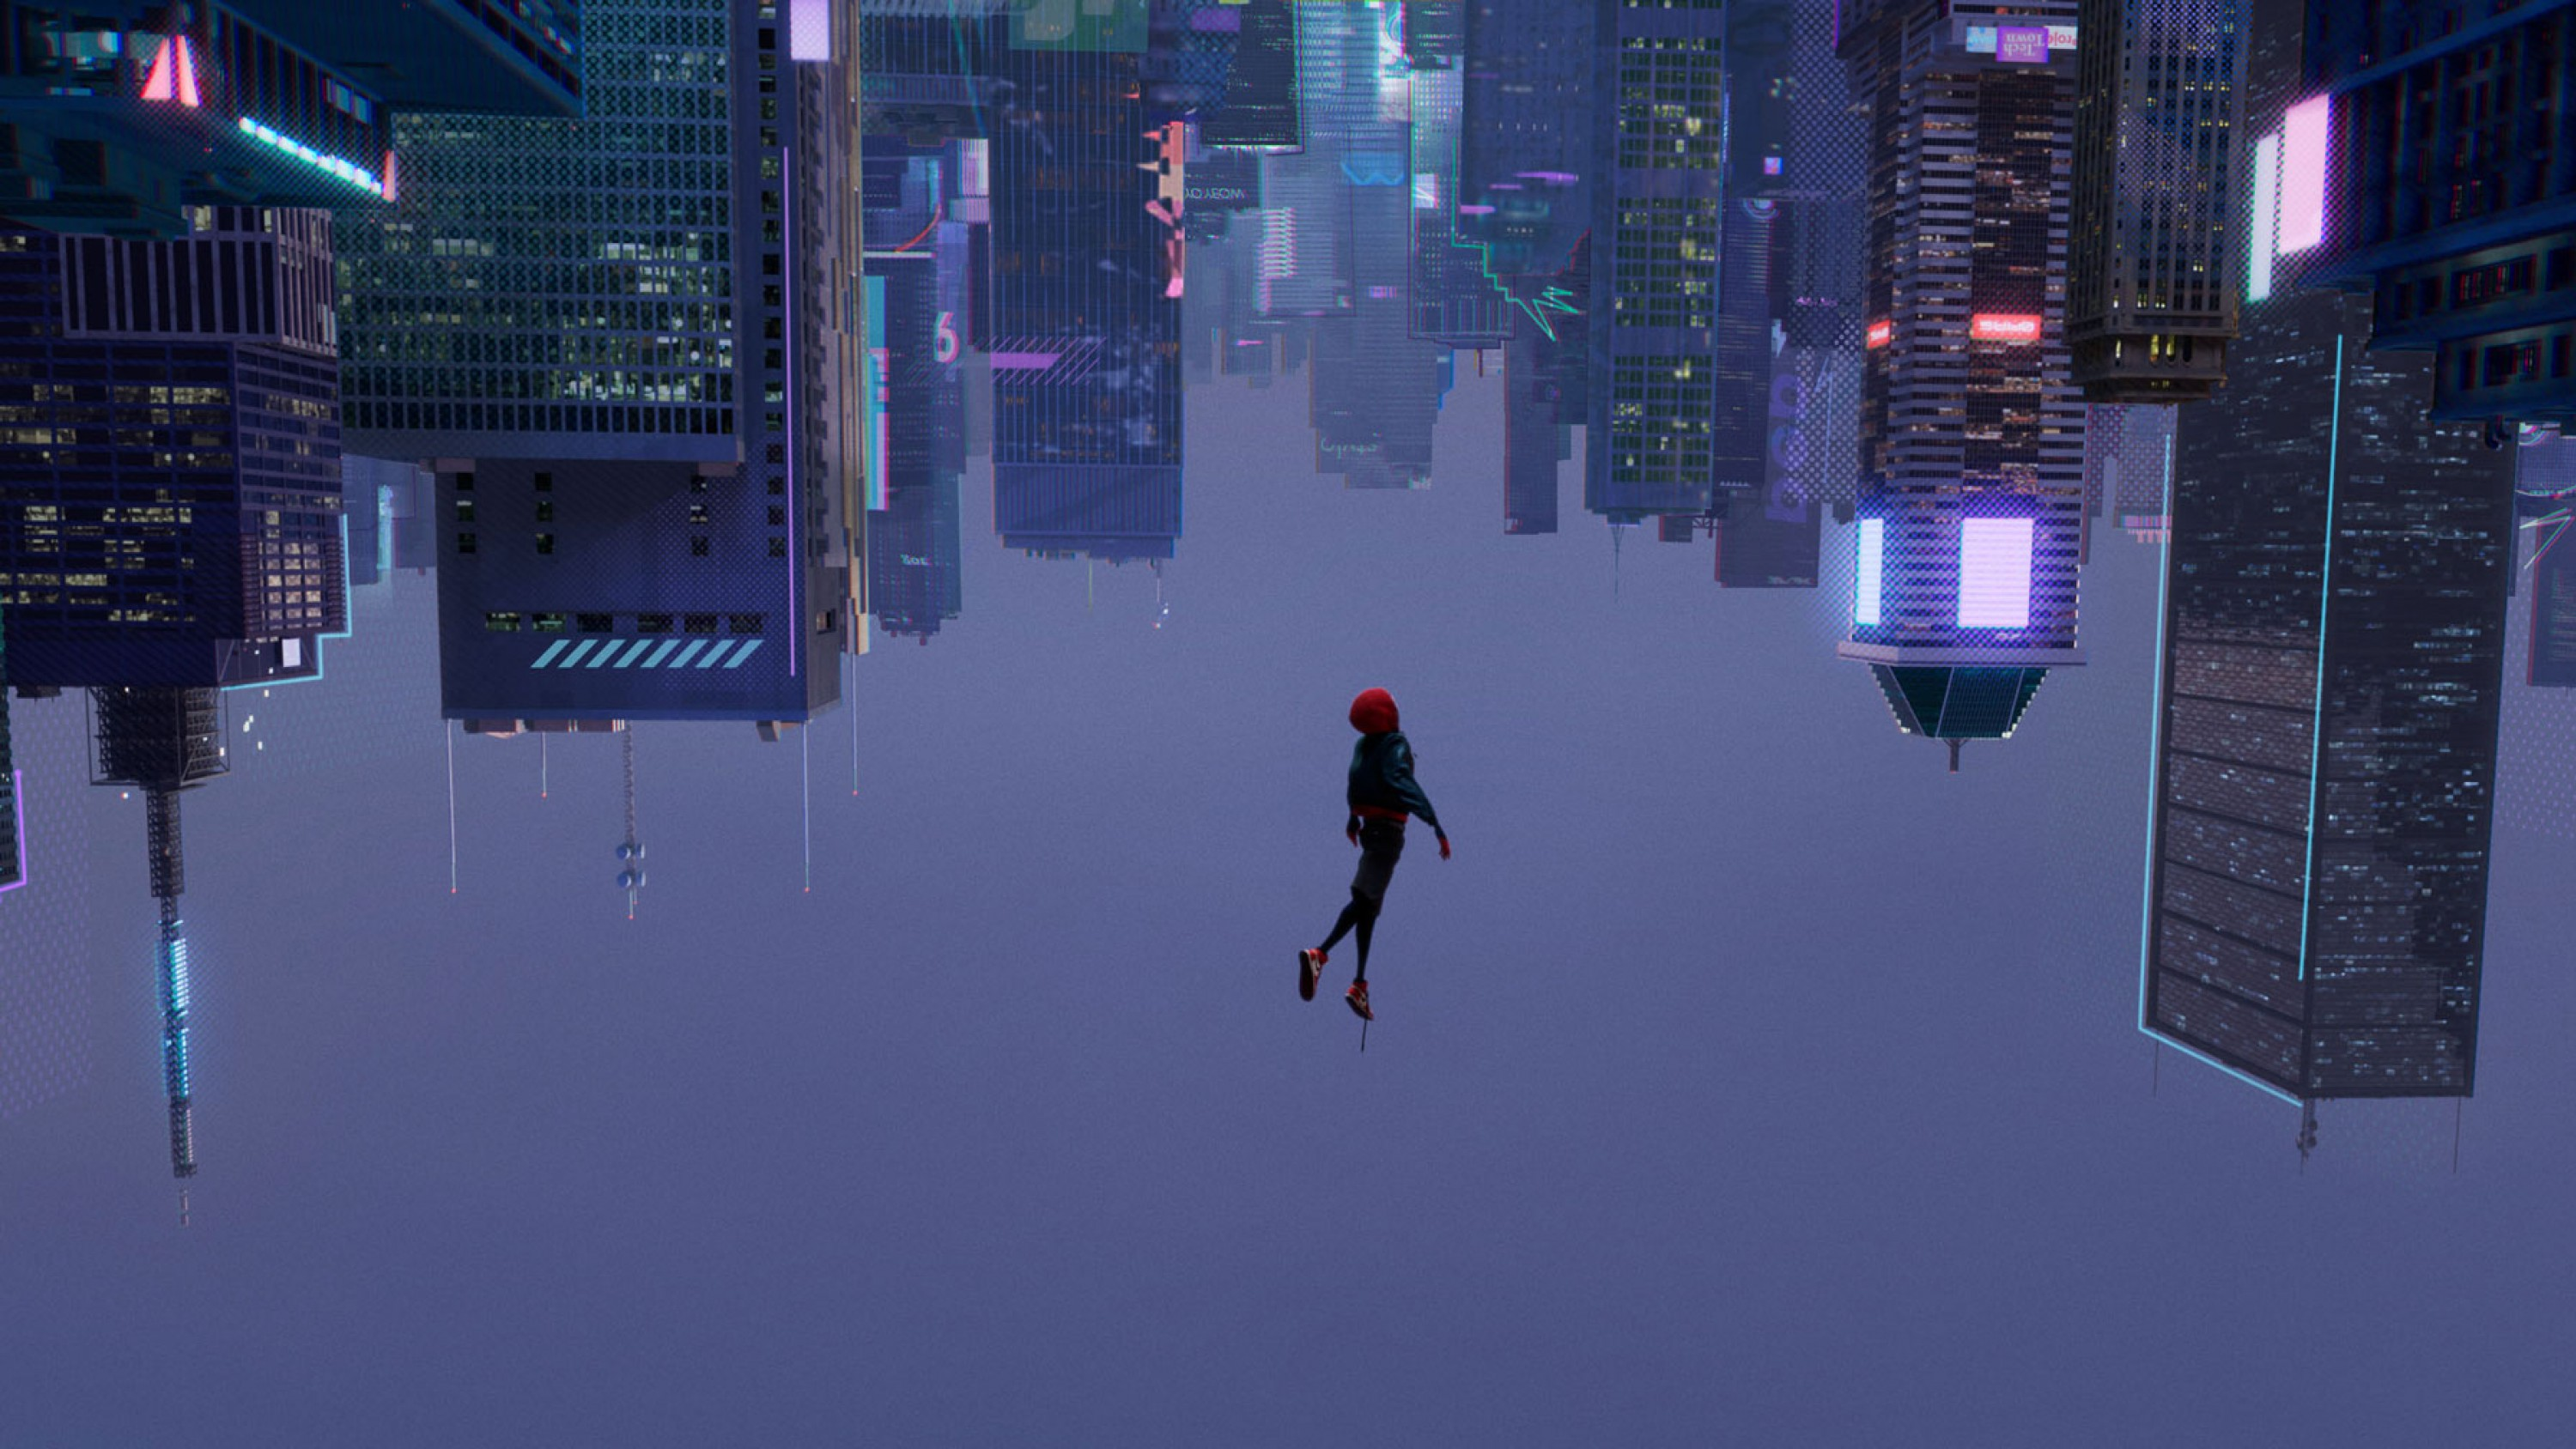 Spider-man: Into the Spider